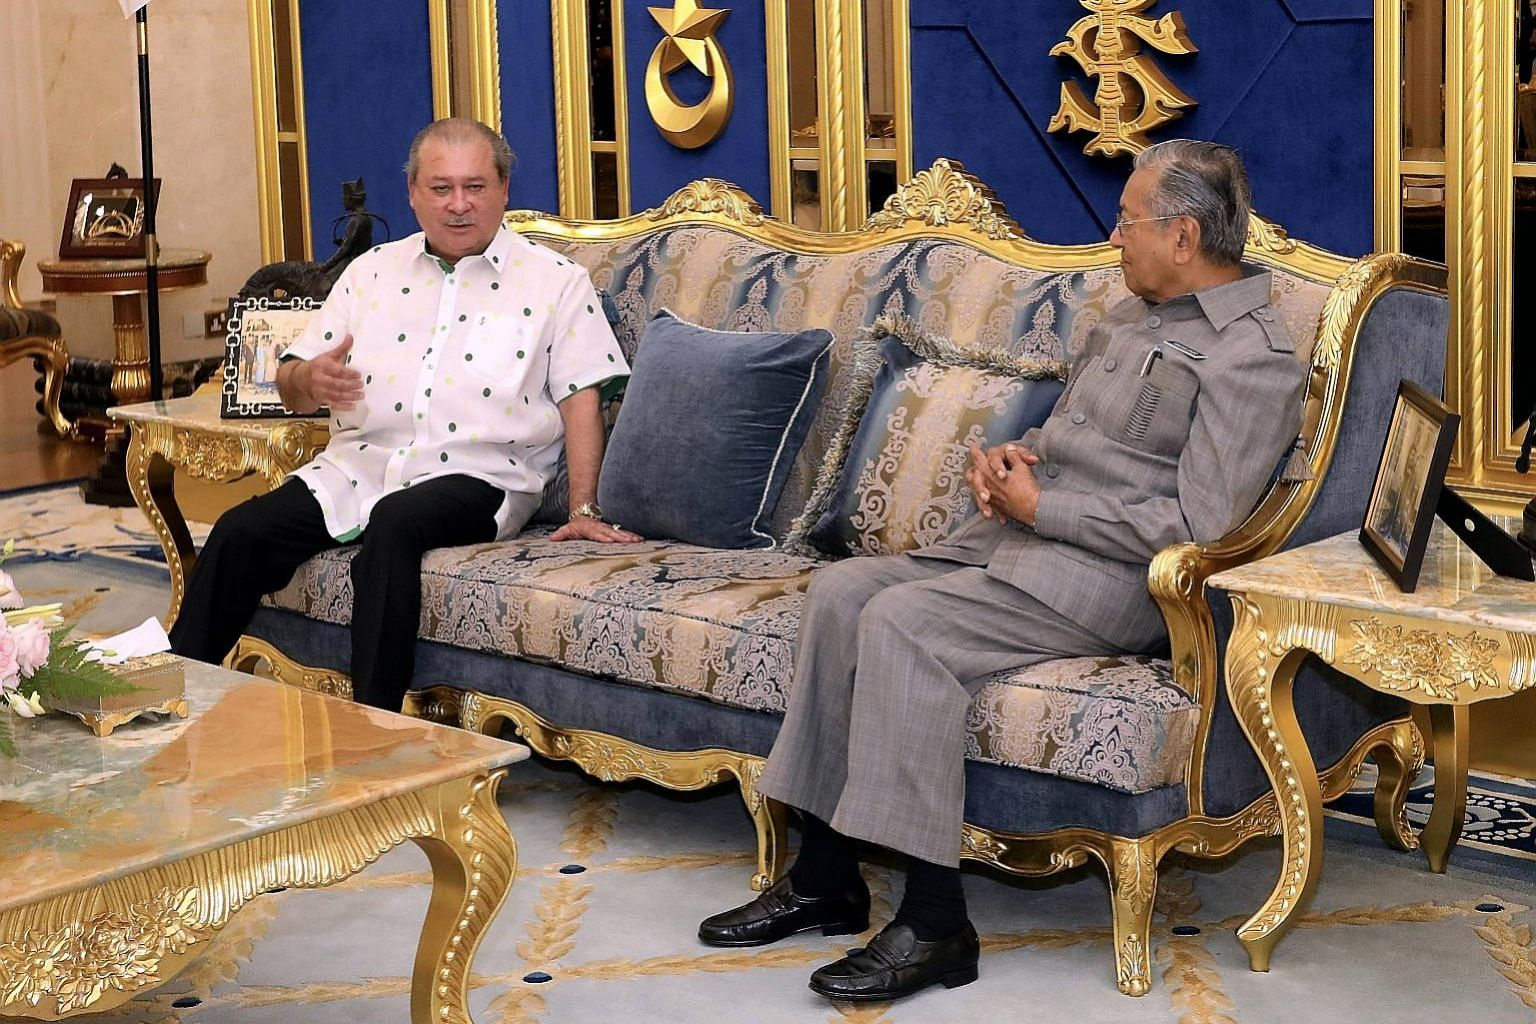 Malaysian Prime Minister Mahathir Mohamad with Johor's Sultan Ibrahim Sultan Iskandar at Istana Bukit Serene in Johor Baru yesterday. According to a source from the Malaysian Prime Minister's Office, the meeting was held following a request by Sultan